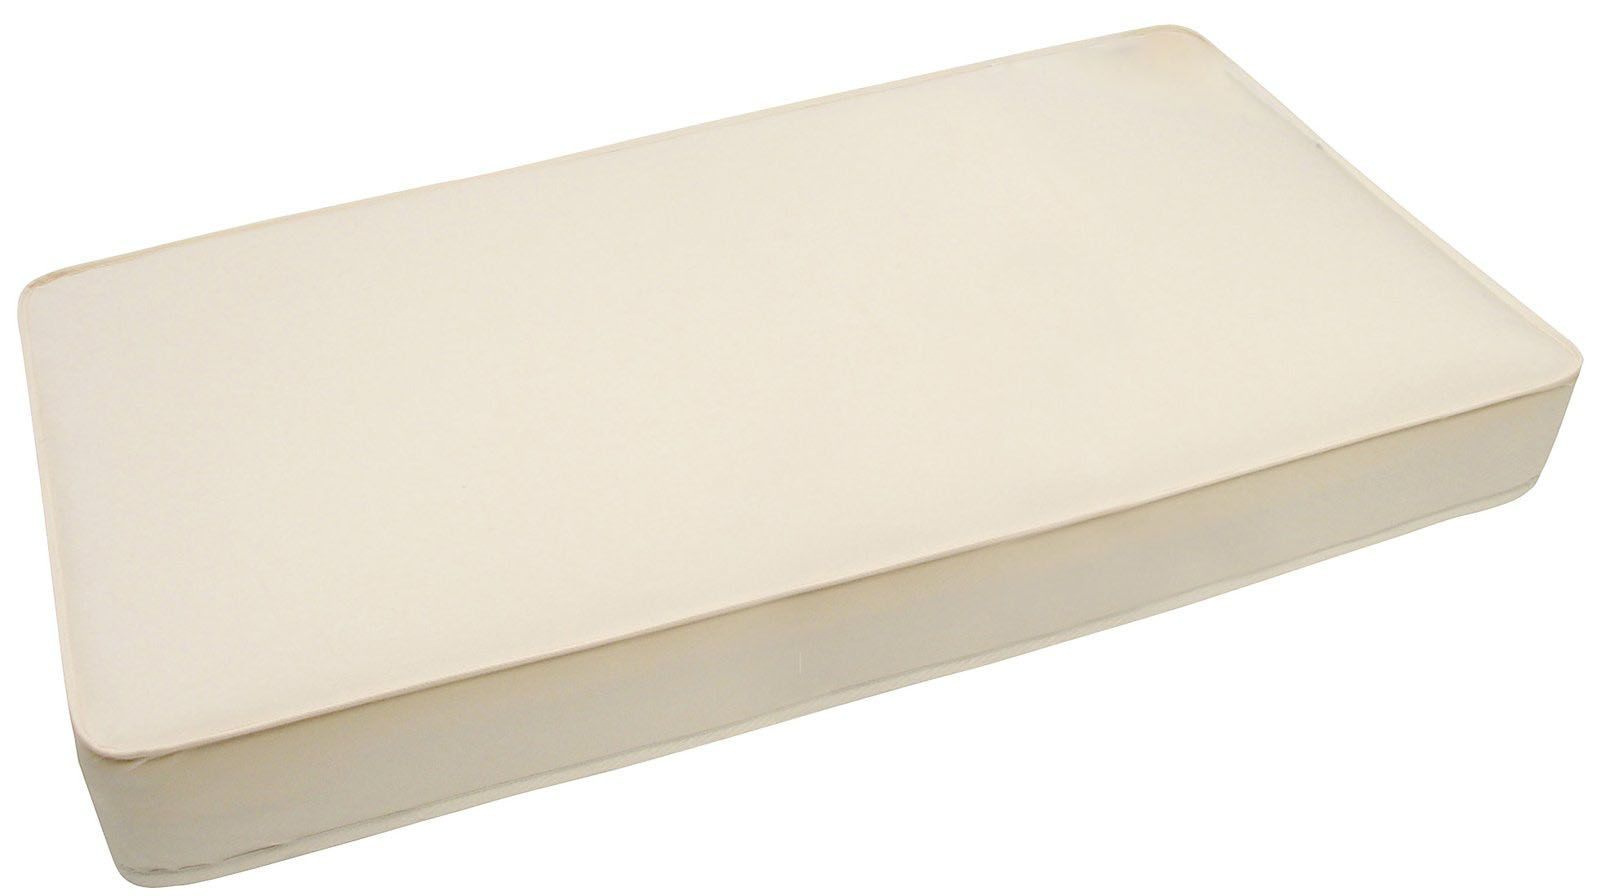 Cotbed Deluxe Mattress with Anti Allergen Cover